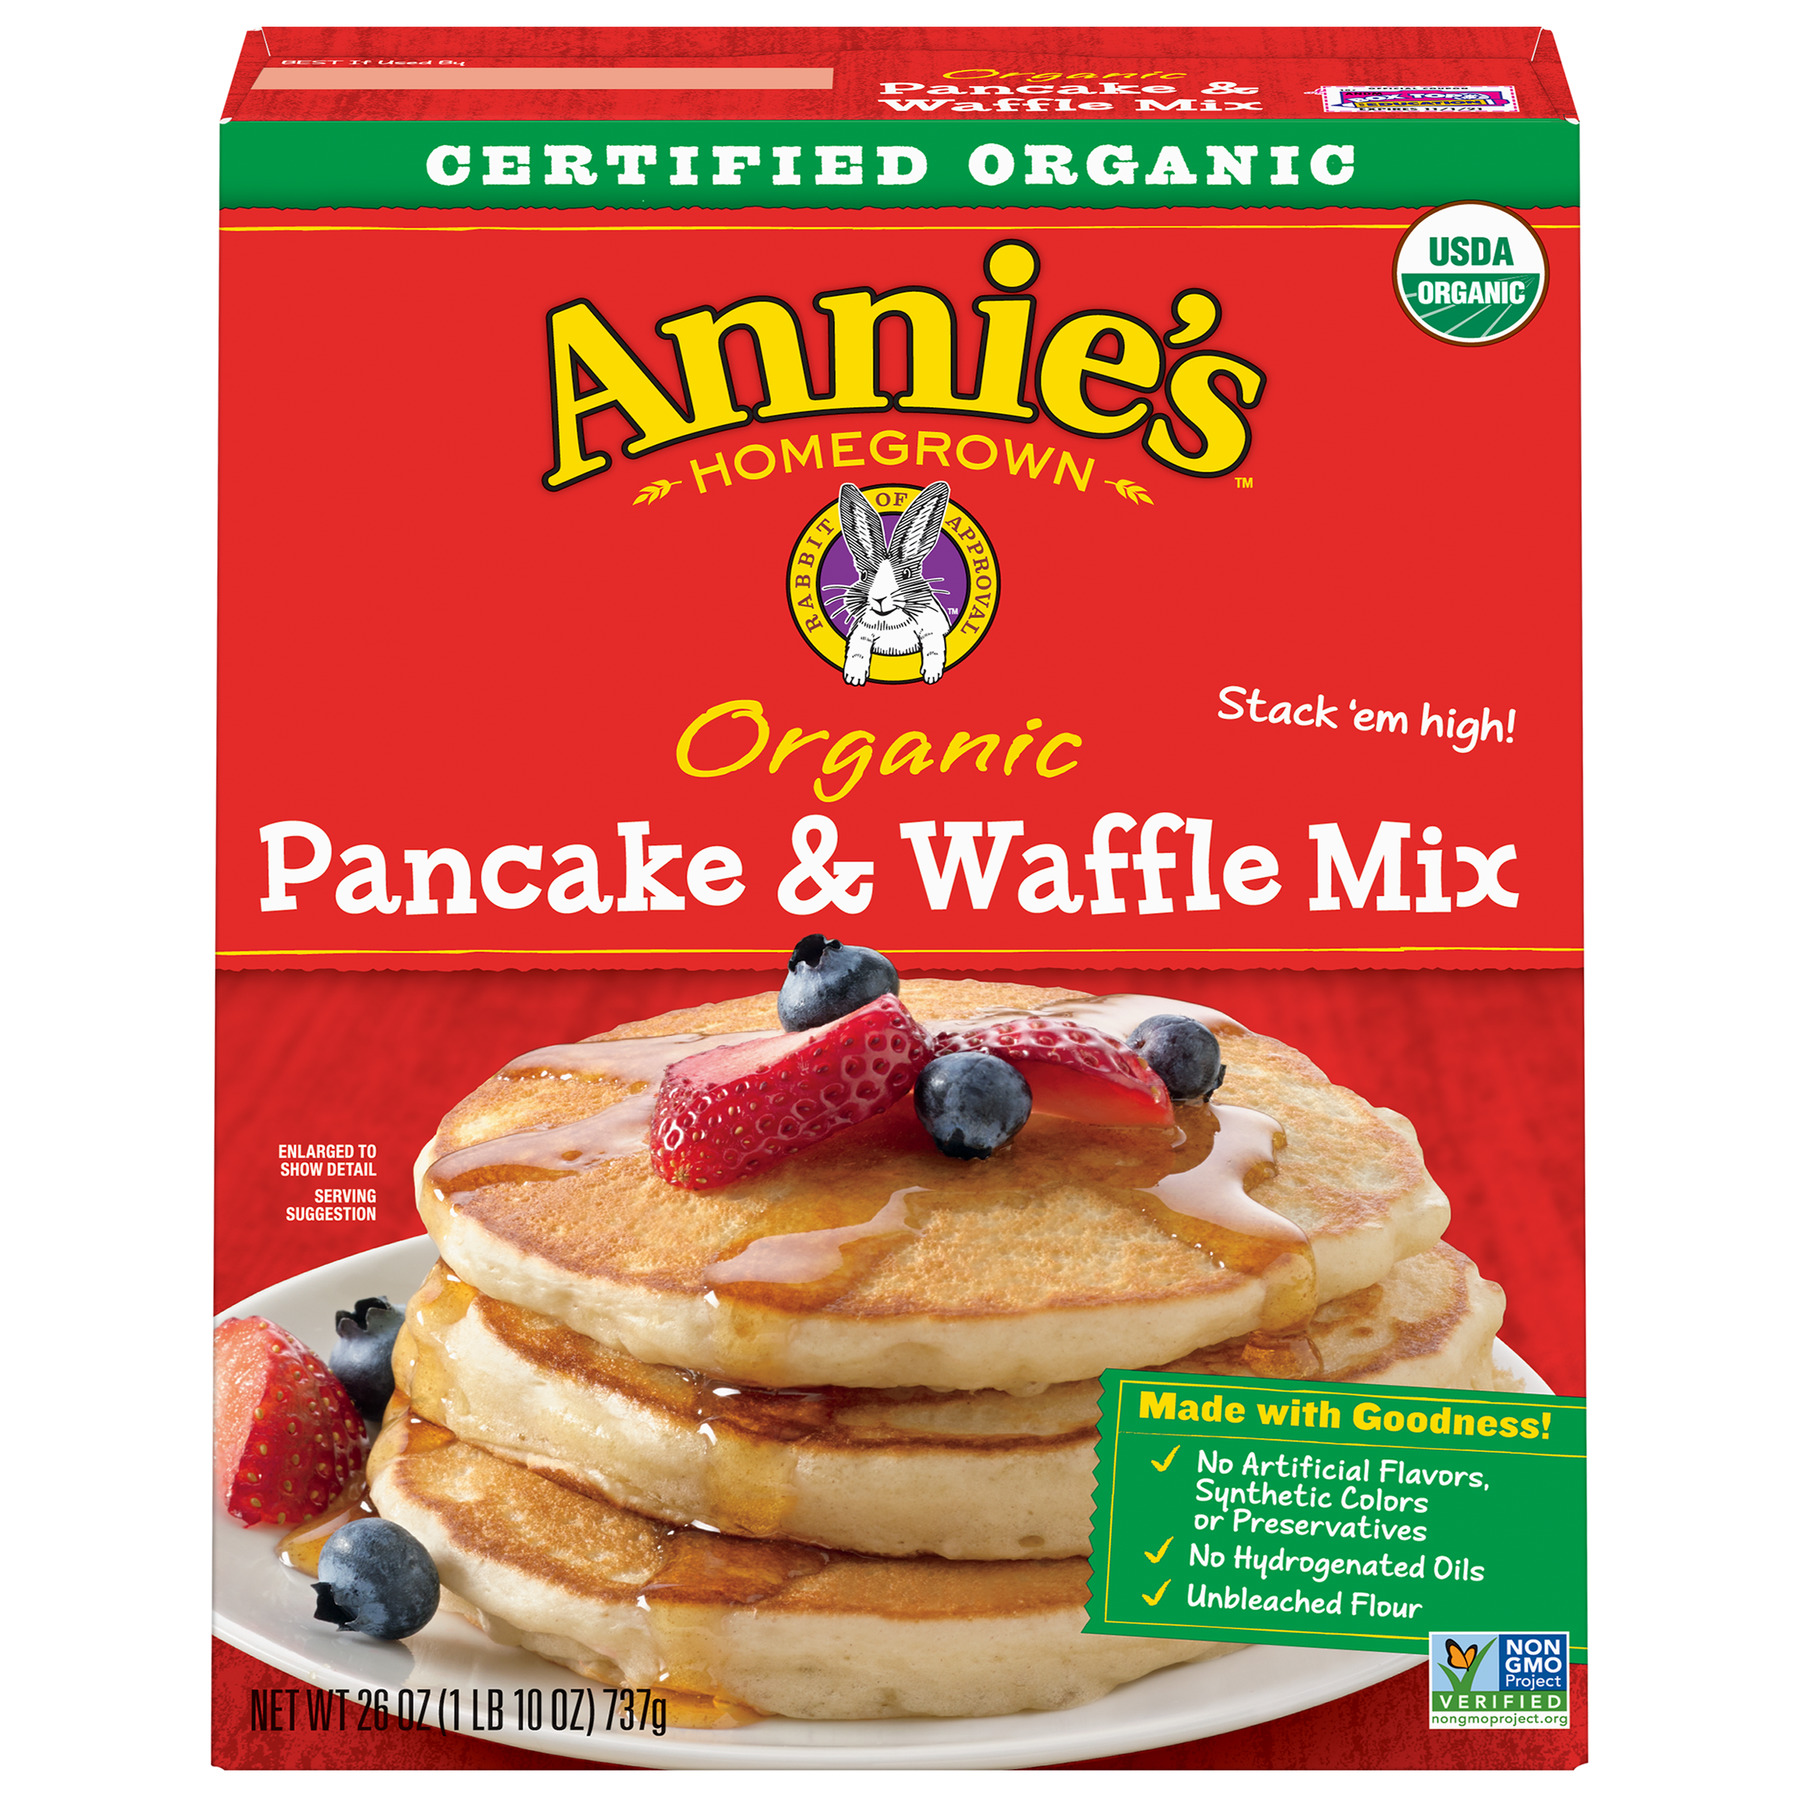 Annie's Organic Pancake & Waffle Mix by General Mills, Inc.